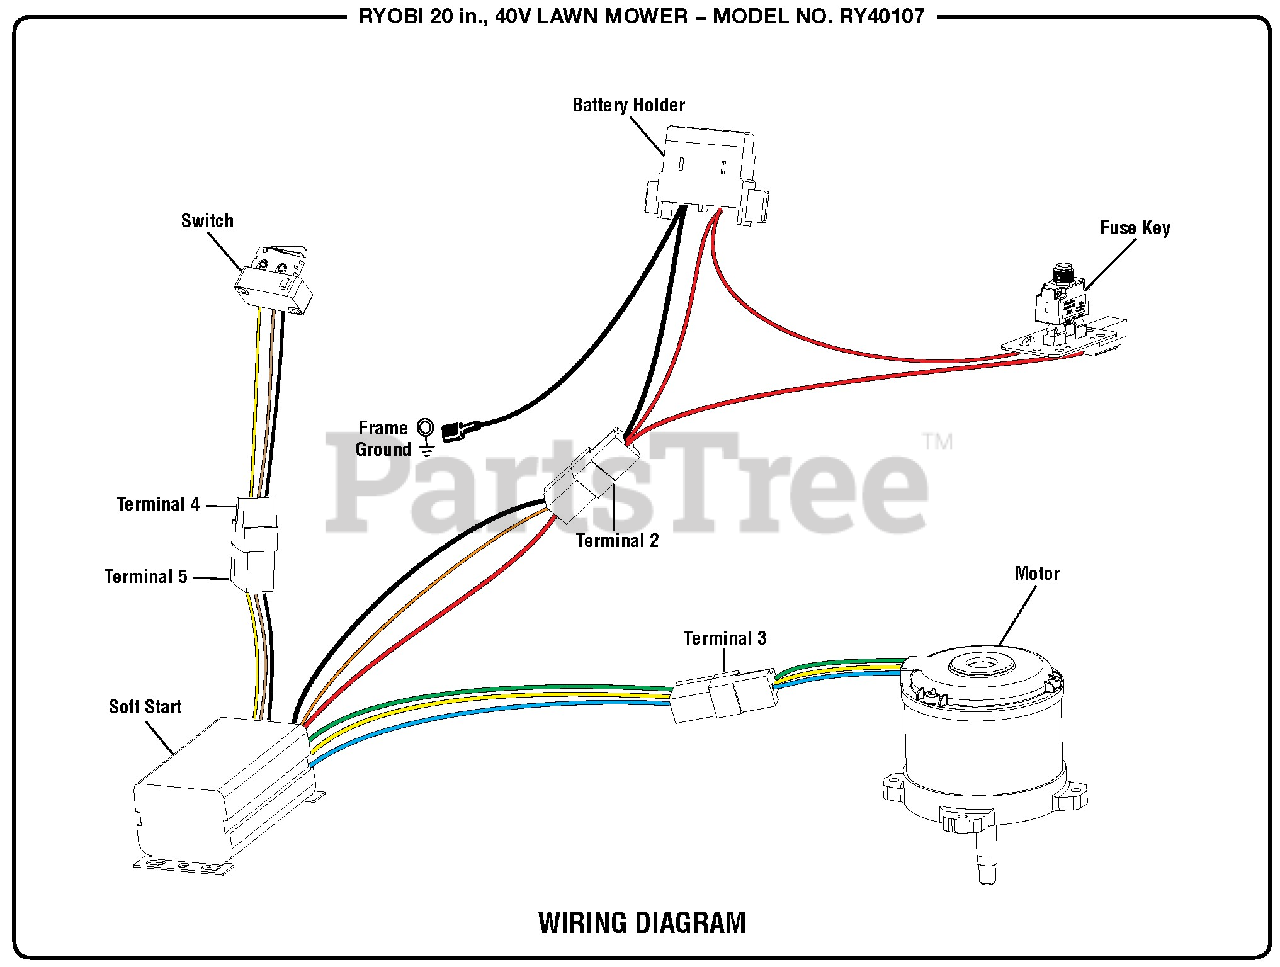 Lawn Mower Wiring Diagram from www.partstree.com